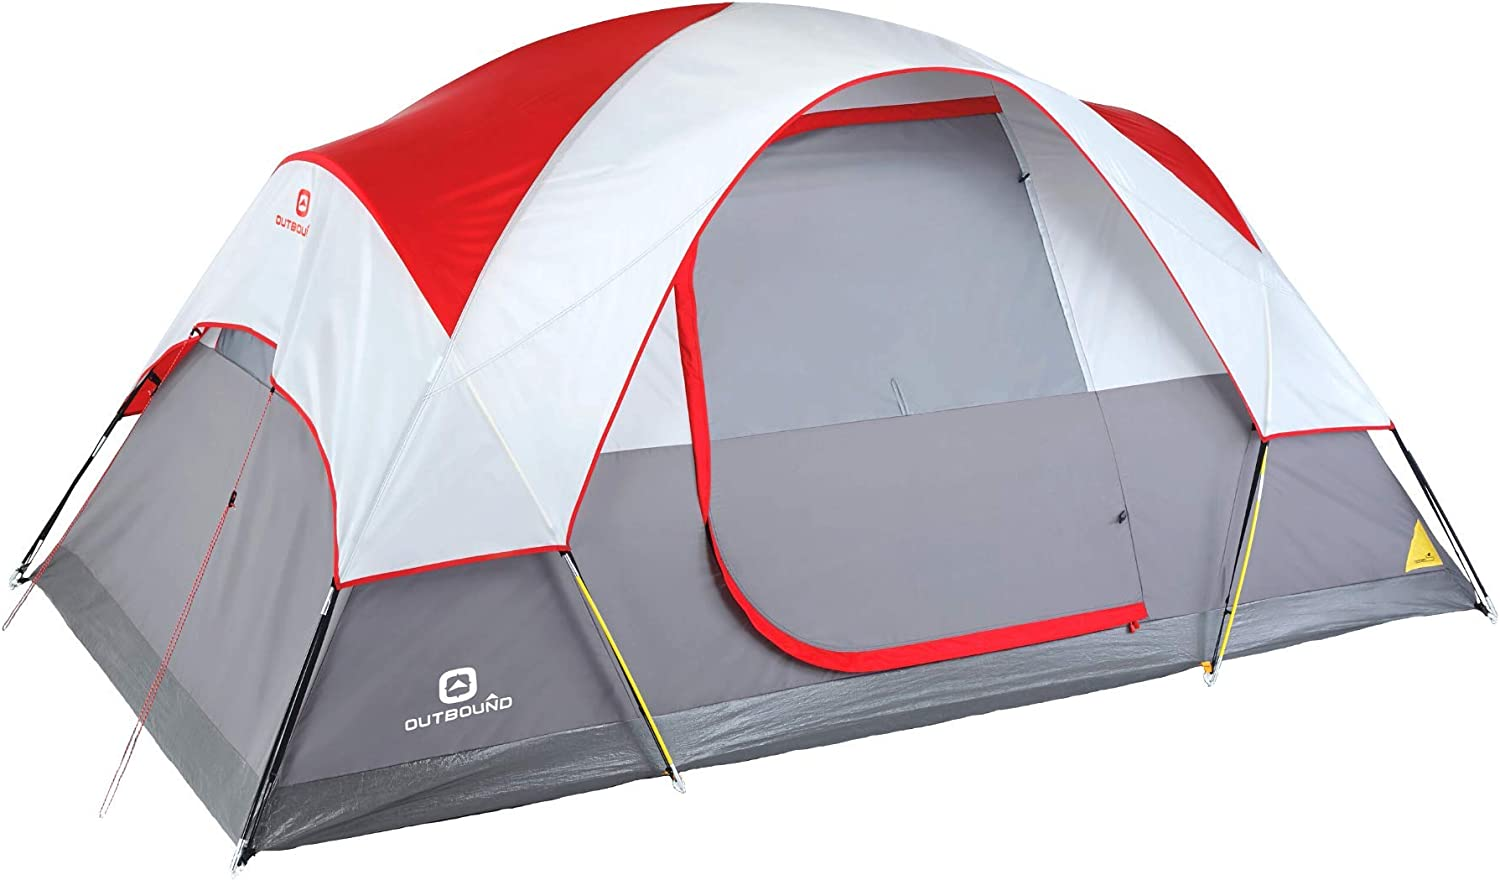 Outbound 6-Person Dome Tent for Camping with Carry Bag and Rainfly | Easy Up & Water Resistant | 3 Season| Red